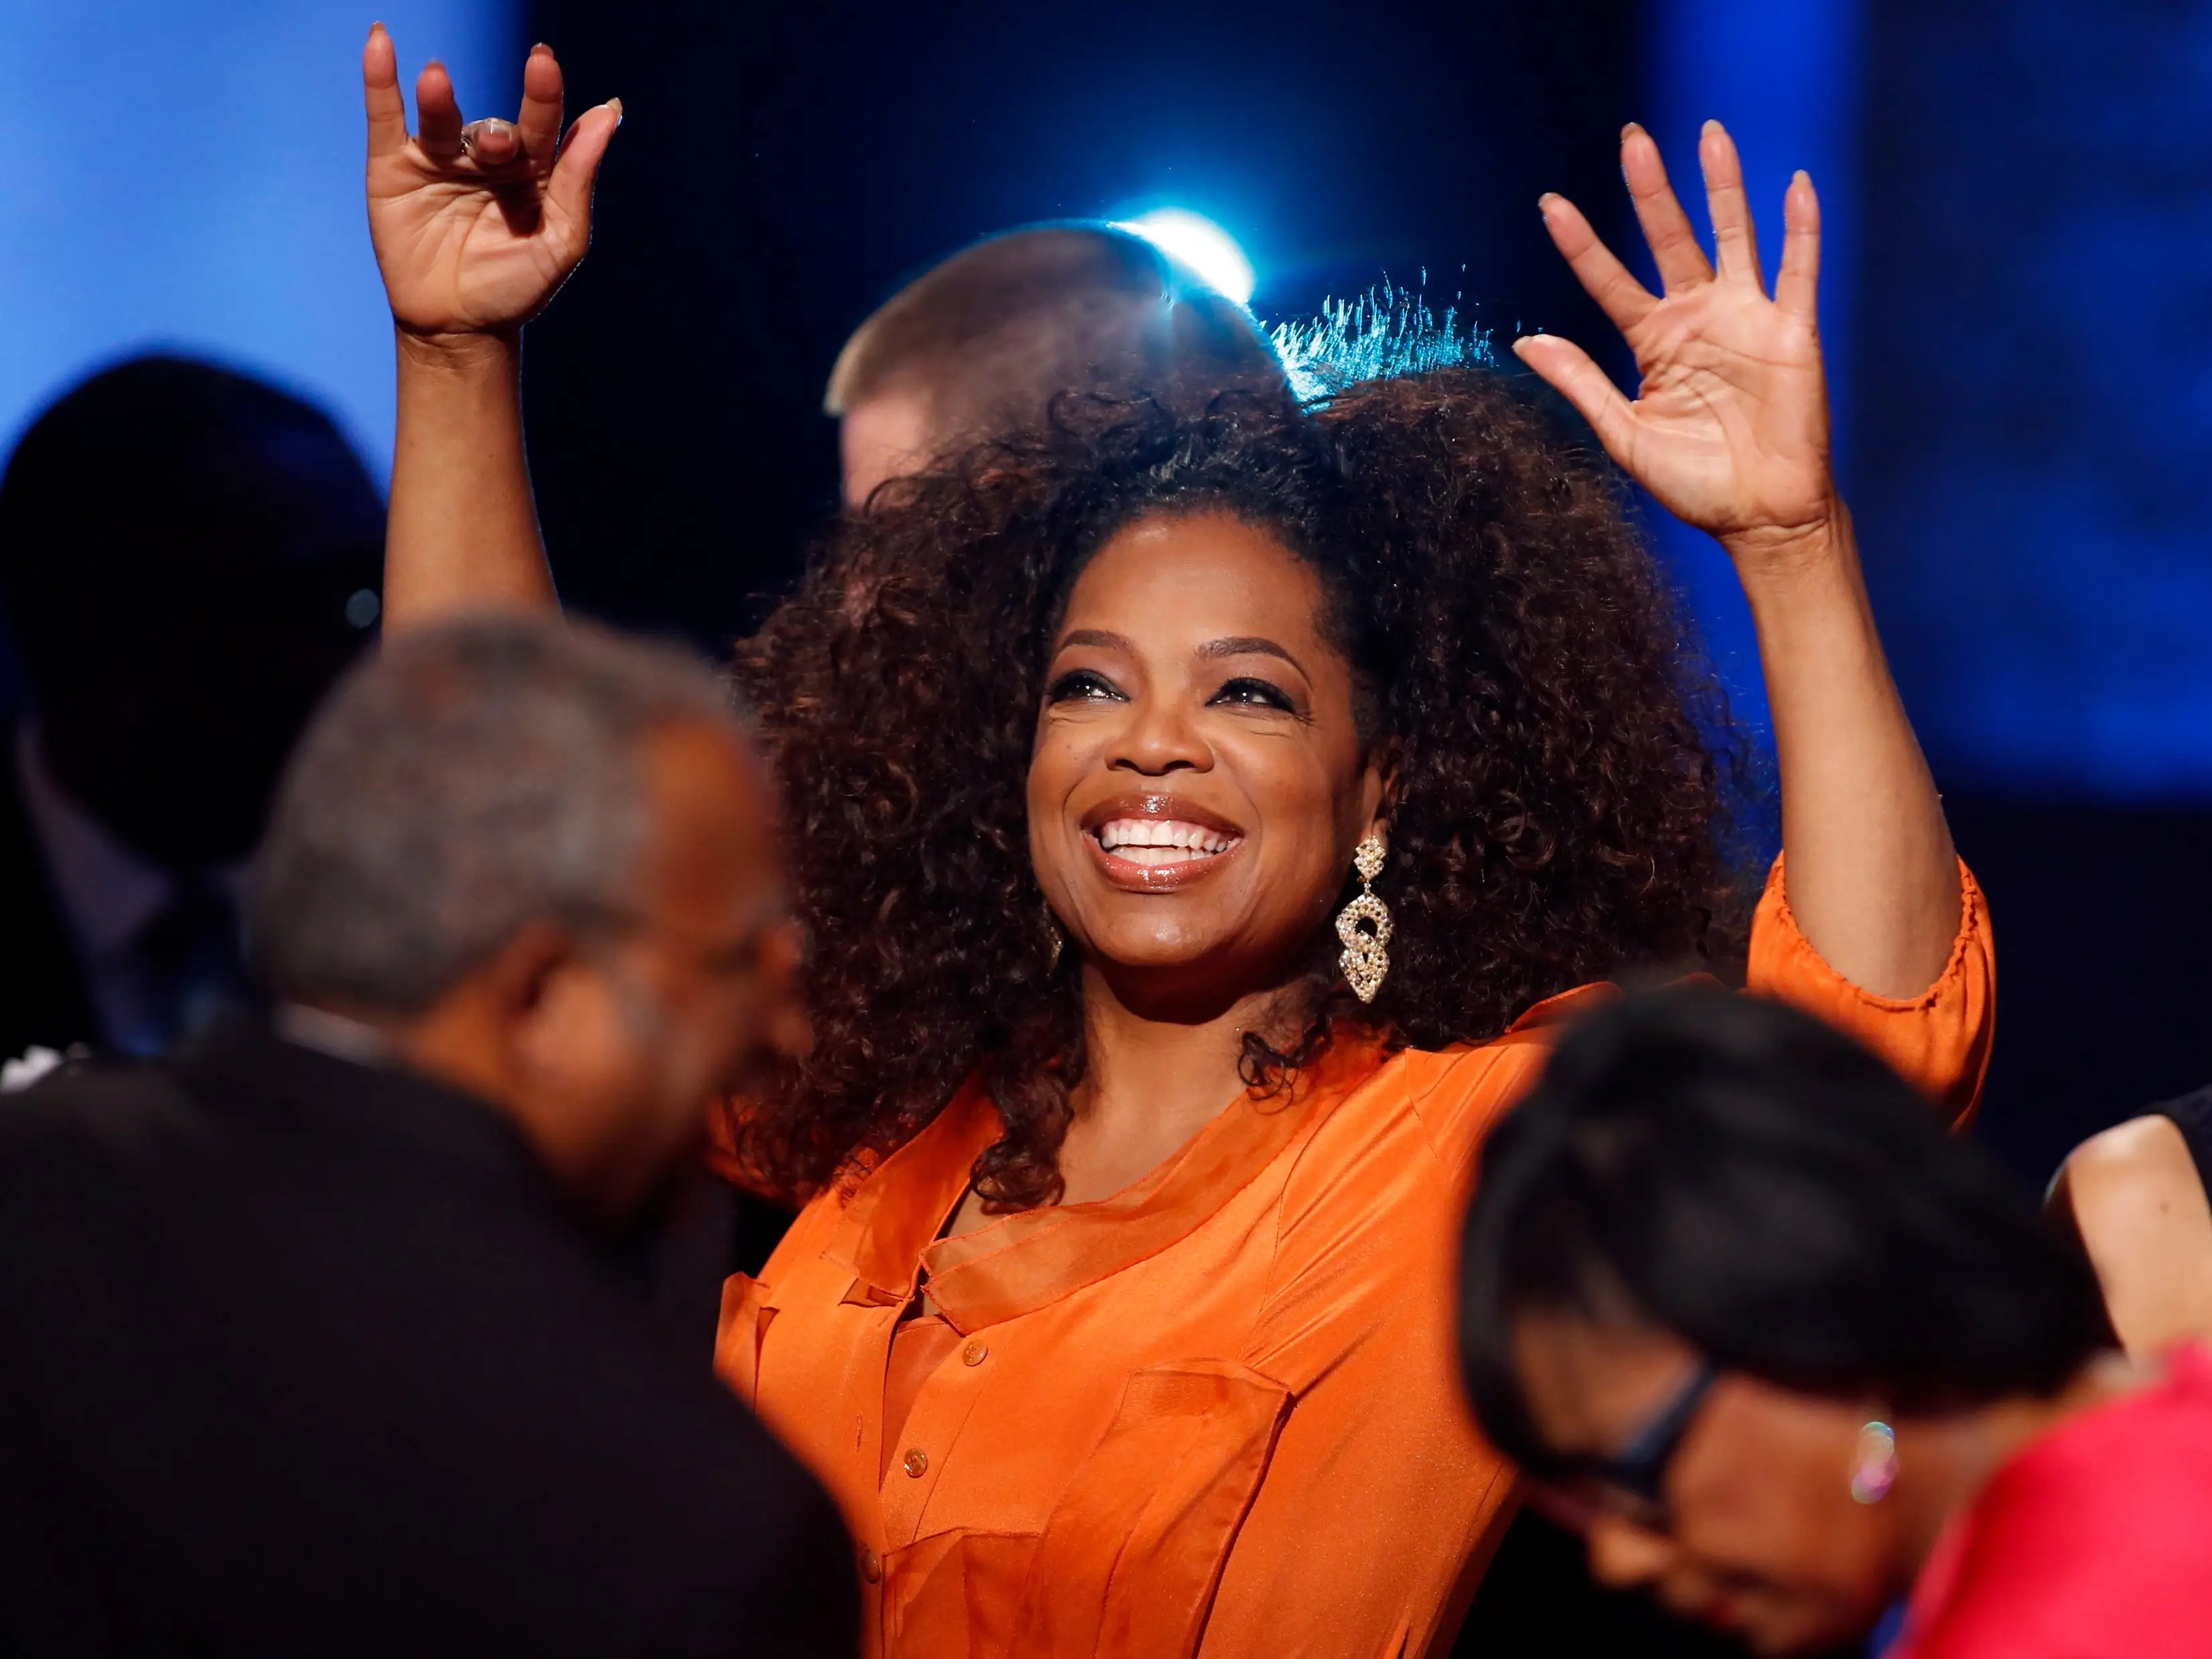 Oprah Winfrey turned a life of hardship into inspiration for a multi-billion-dollar empire.